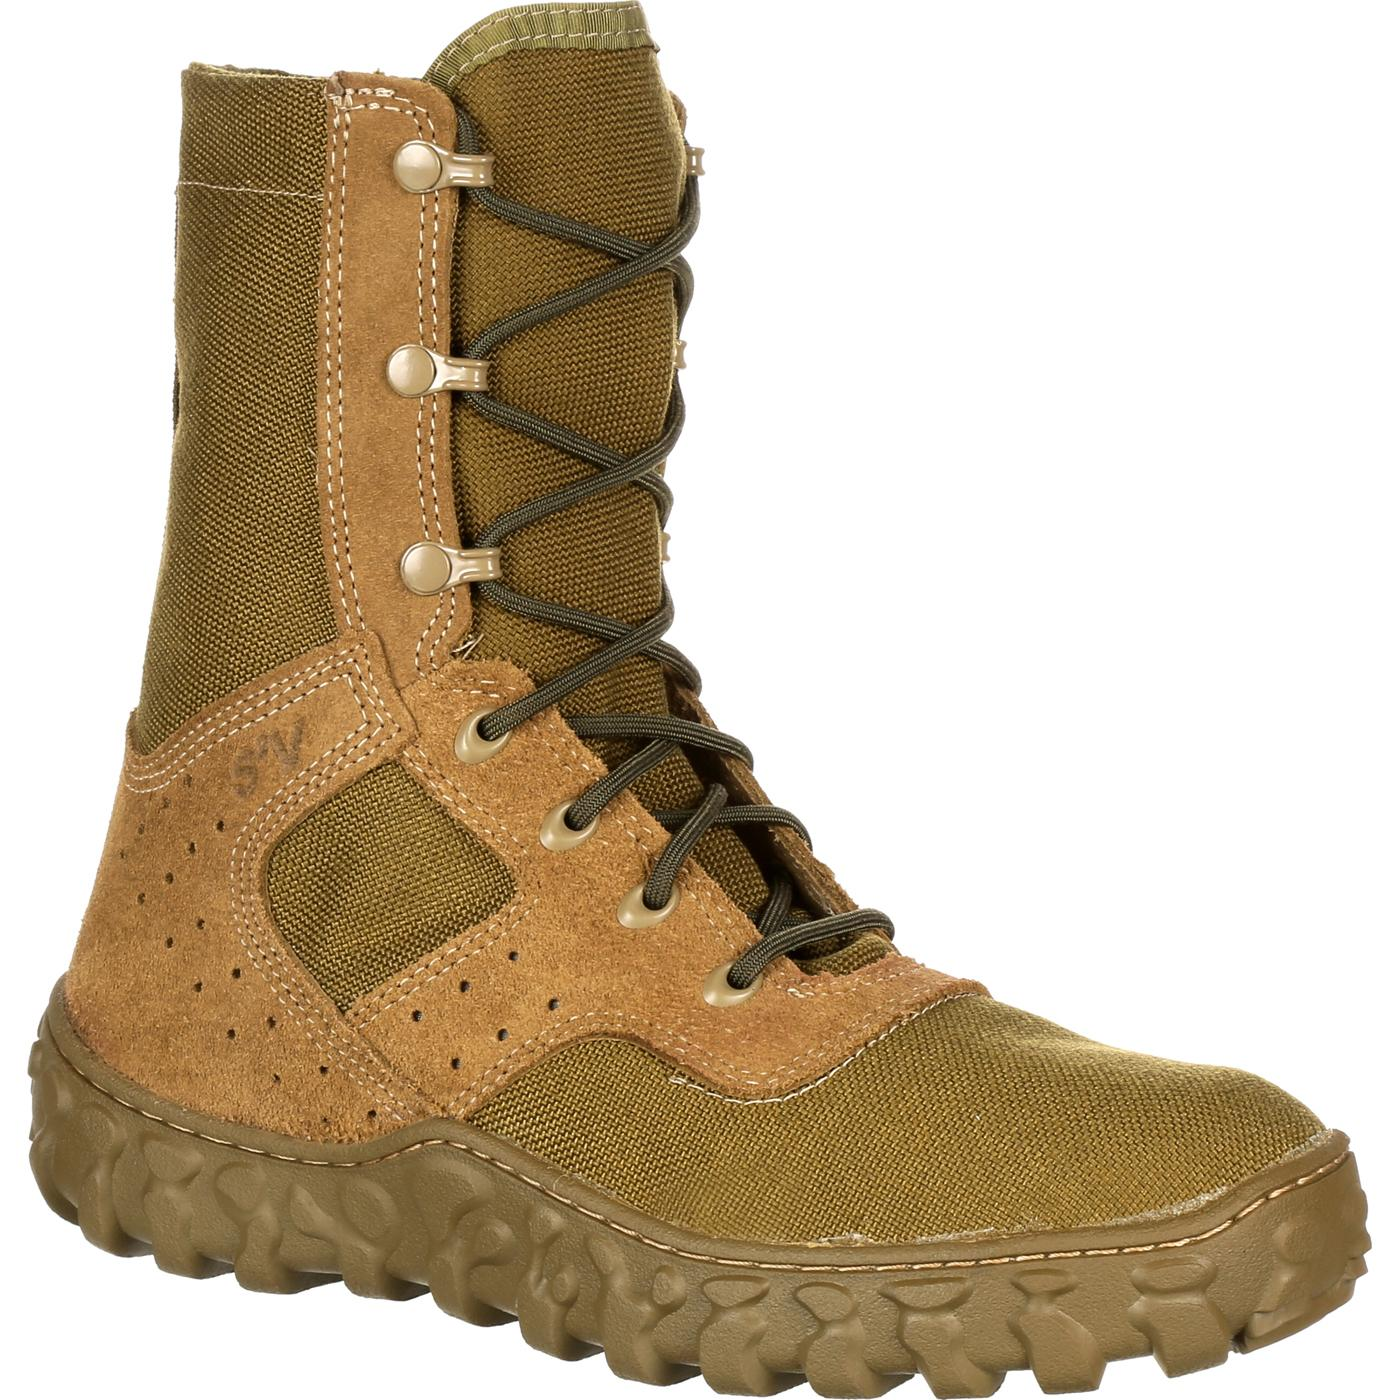 Rocky S2v Men S Military Jungle Boots Style Fq0000106